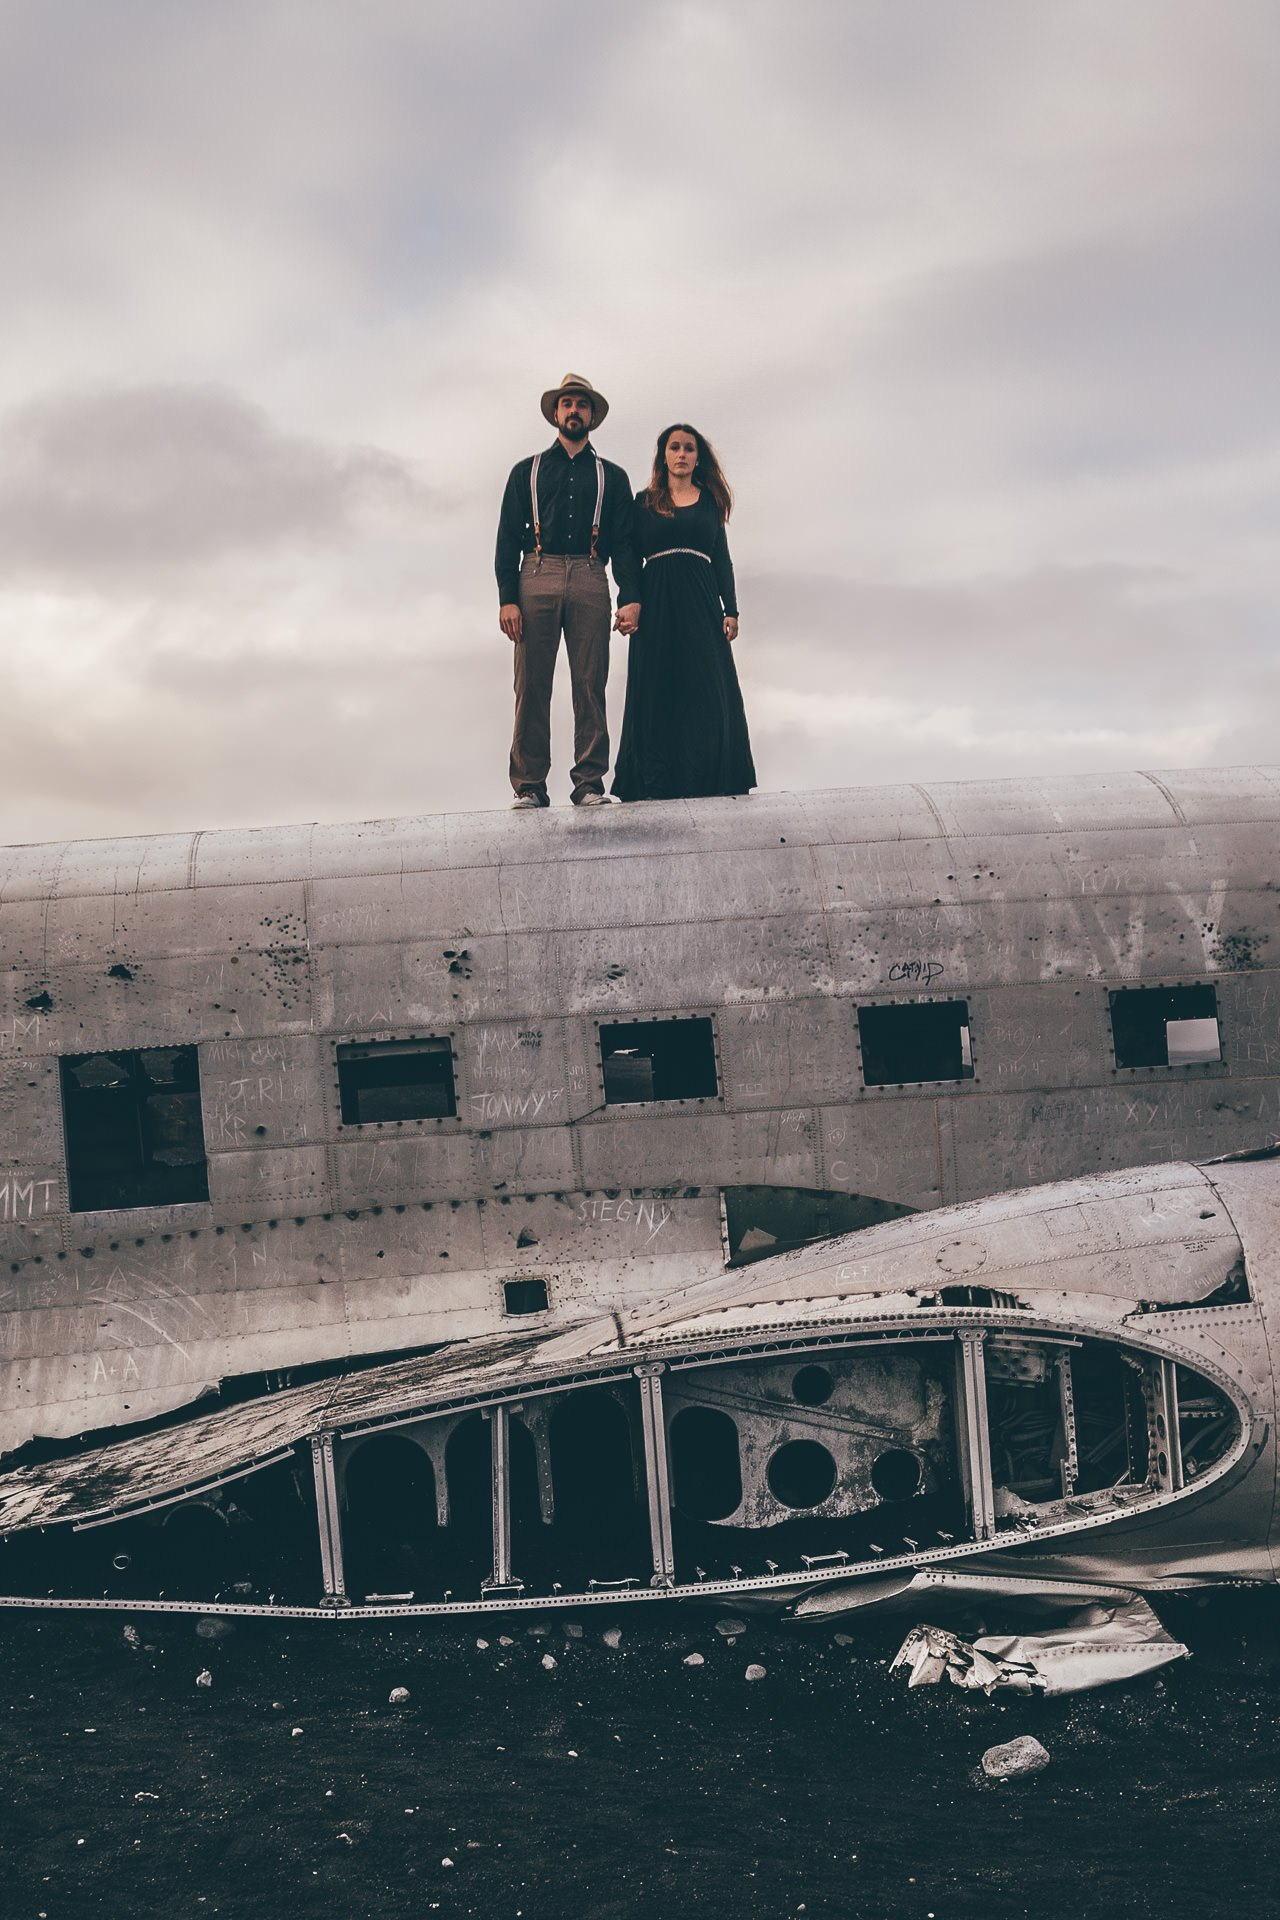 Destination-Wedding-Photographer-Iceland-Solheimasandur-PlaneWreck-MathiasBrabetz-12